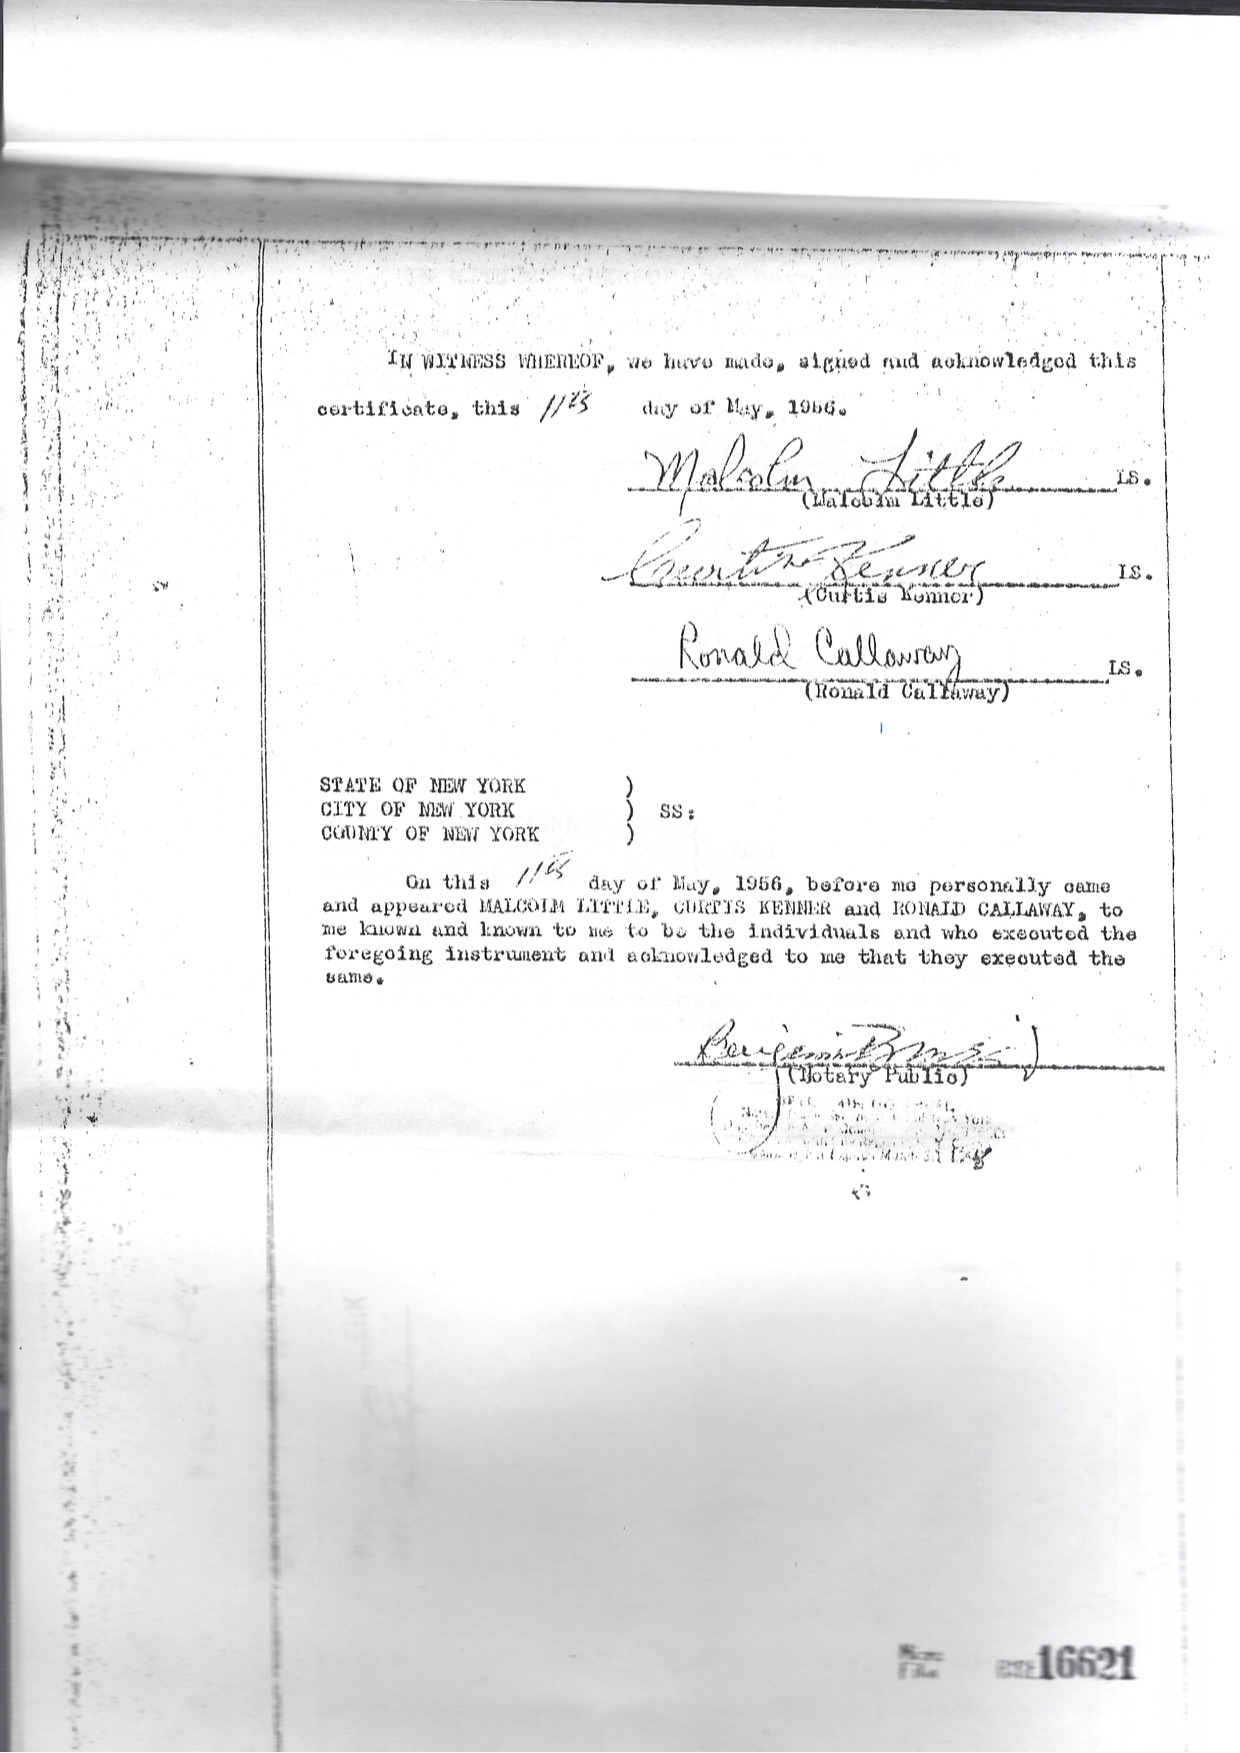 Temple No. 7 Incorporation Papers signed by Malcolm X (Little) Curtis Kenmer and Umar Alamin (Ronald Calloway) Courtesy of Fatimah Dawan